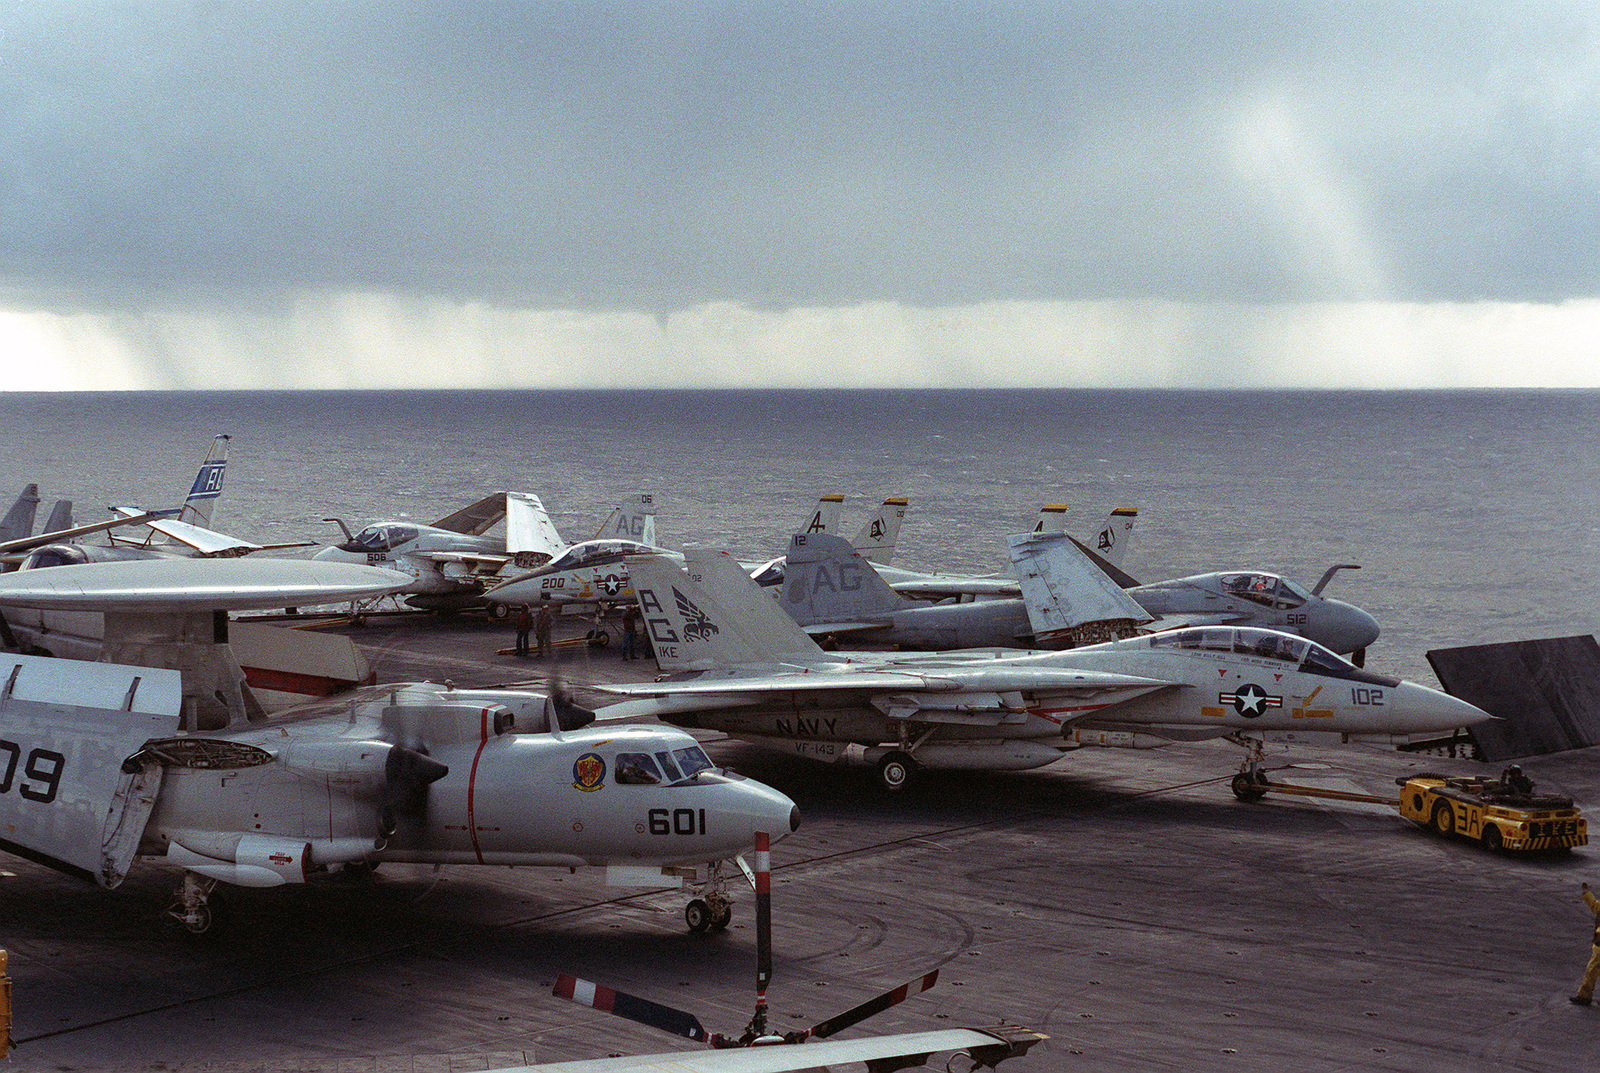 E-2C Hawkeye, left, F-14A Tomcat, center, and A-6E Intruder aircraft parked on the flight deck of the nuclear-powered aircraft carrier USS DWIGHT D. EISENHOWER (CVN 69)